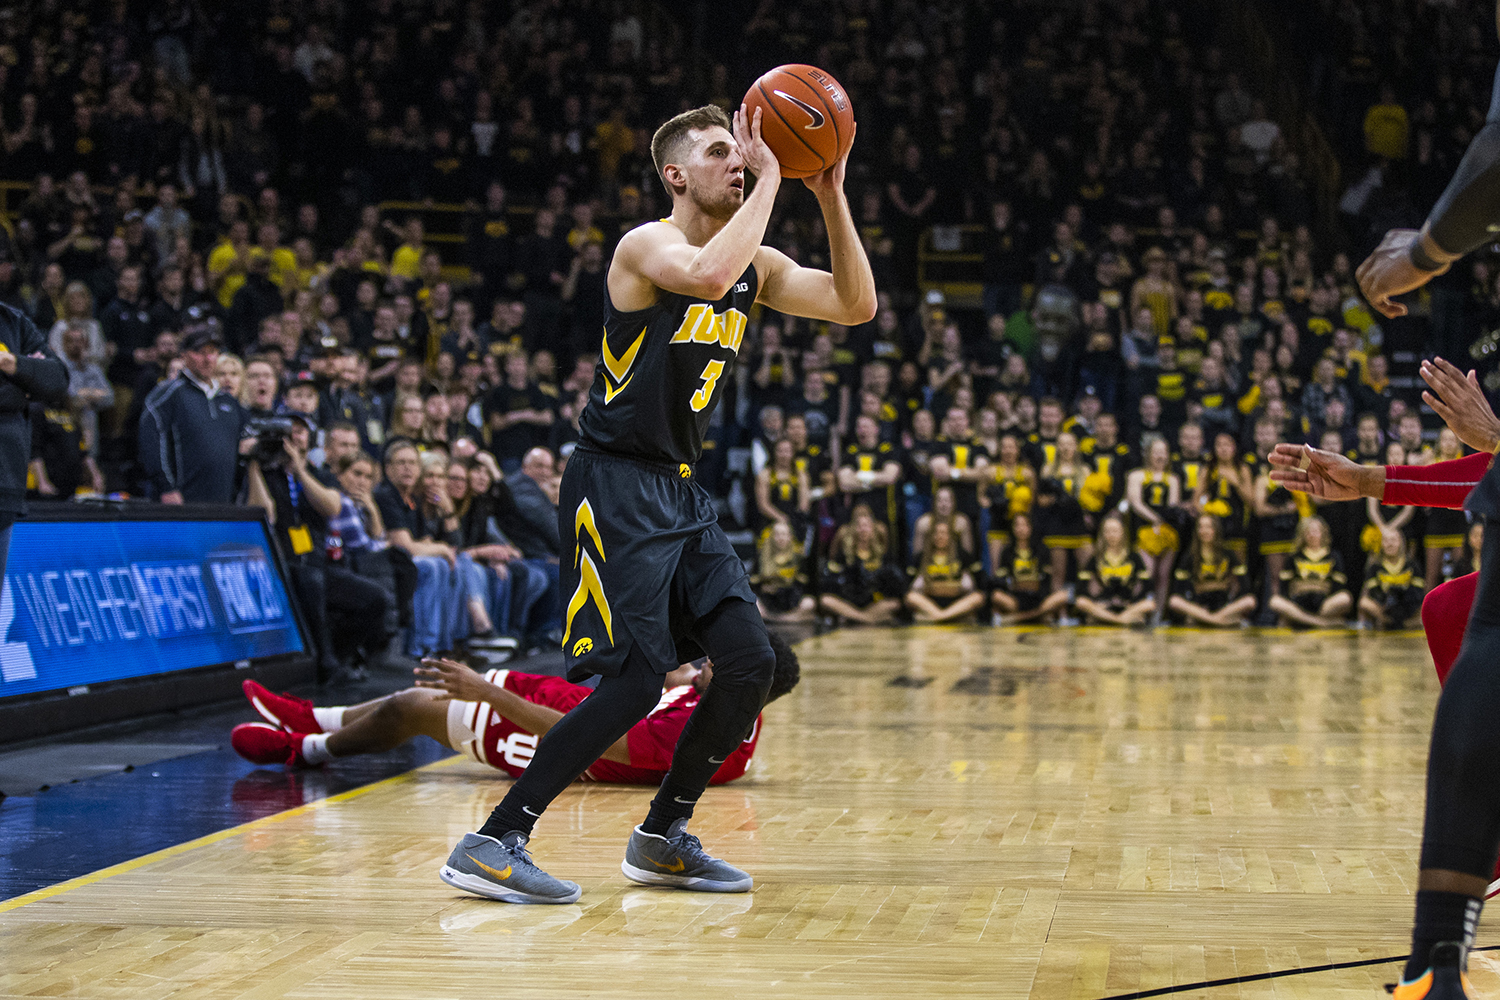 Iowa guard Jordan Bohannon prepares to shoot the ball during men's basketball vs. Indiana at Carver-Hawkeye Arena on Friday, February 22, 2019. The Hawkeyes defeated the Hoosiers 76-70. (Katina Zentz/The Daily Iowan)